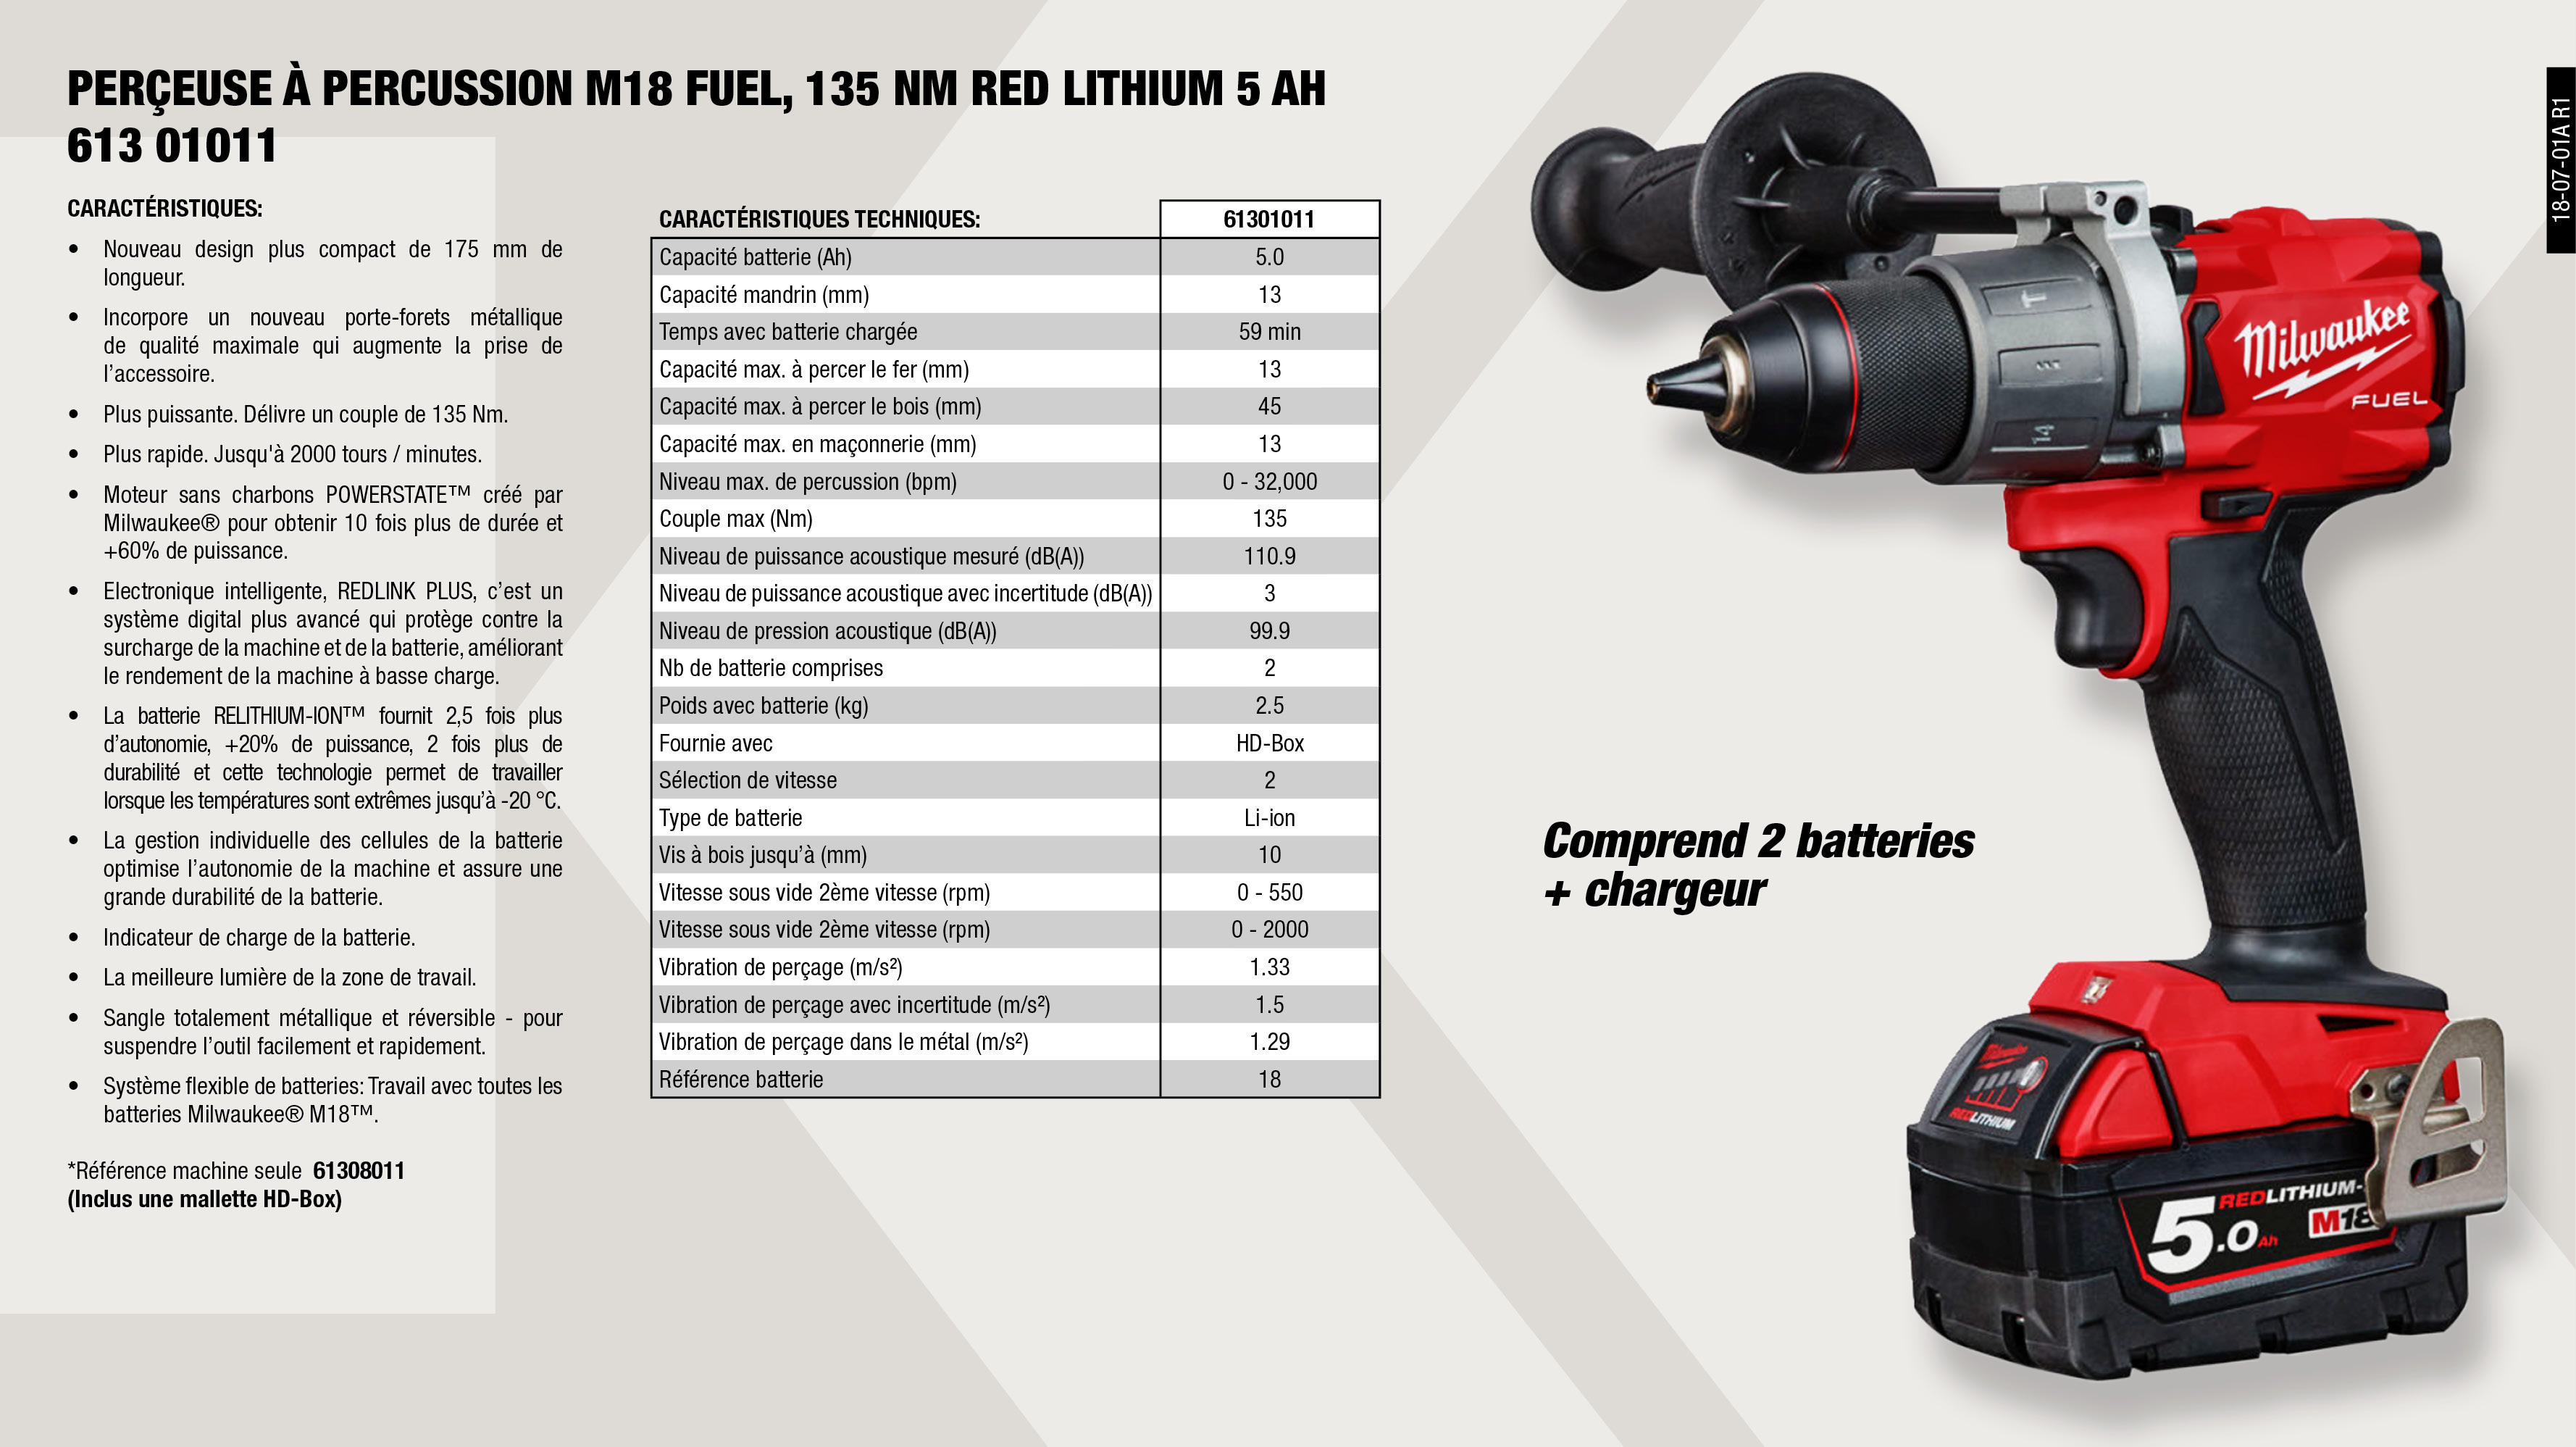 PERCEUSE À PERCU. M18 FUEL,135 NM RED LITHIUM 5 AH          ,  									PERCEUSE À PERCU. M18 FUEL, 135 NM SANS BATTERIE            ,